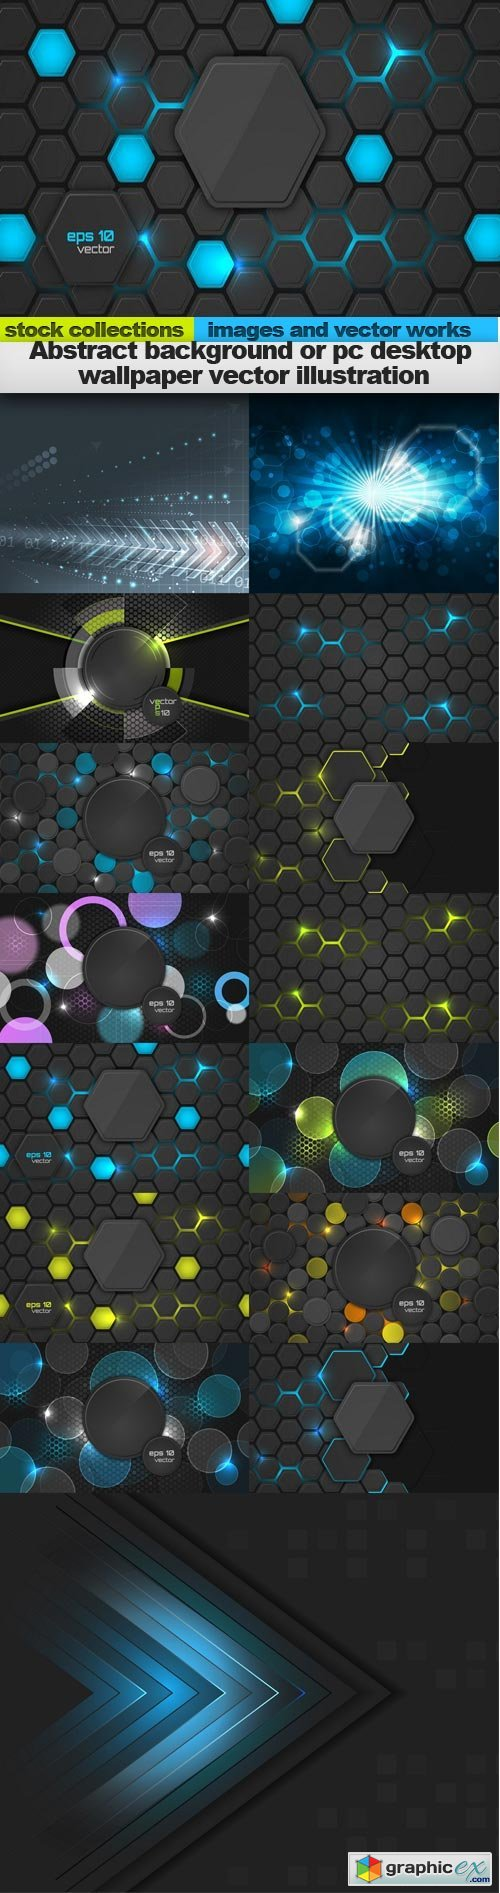 Abstract background or pc desktop wallpaper vector illustration, 15 x EPS